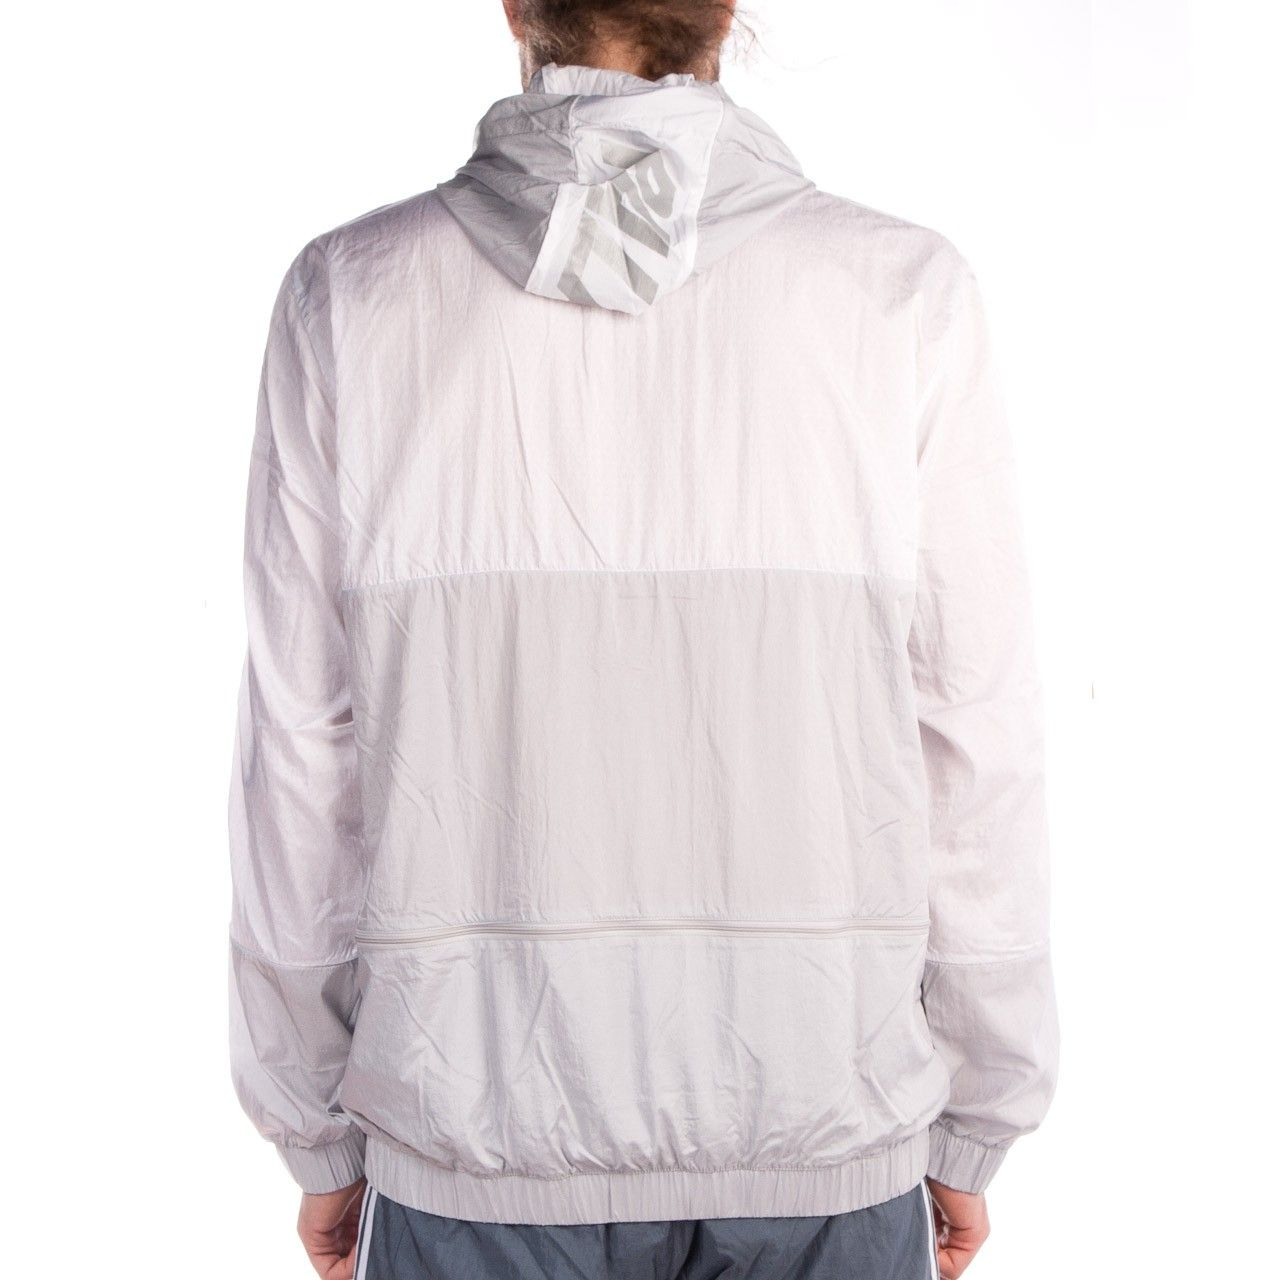 Adidas x Palace Packable Windbreaker 1 Jacket (White) | Cool ...